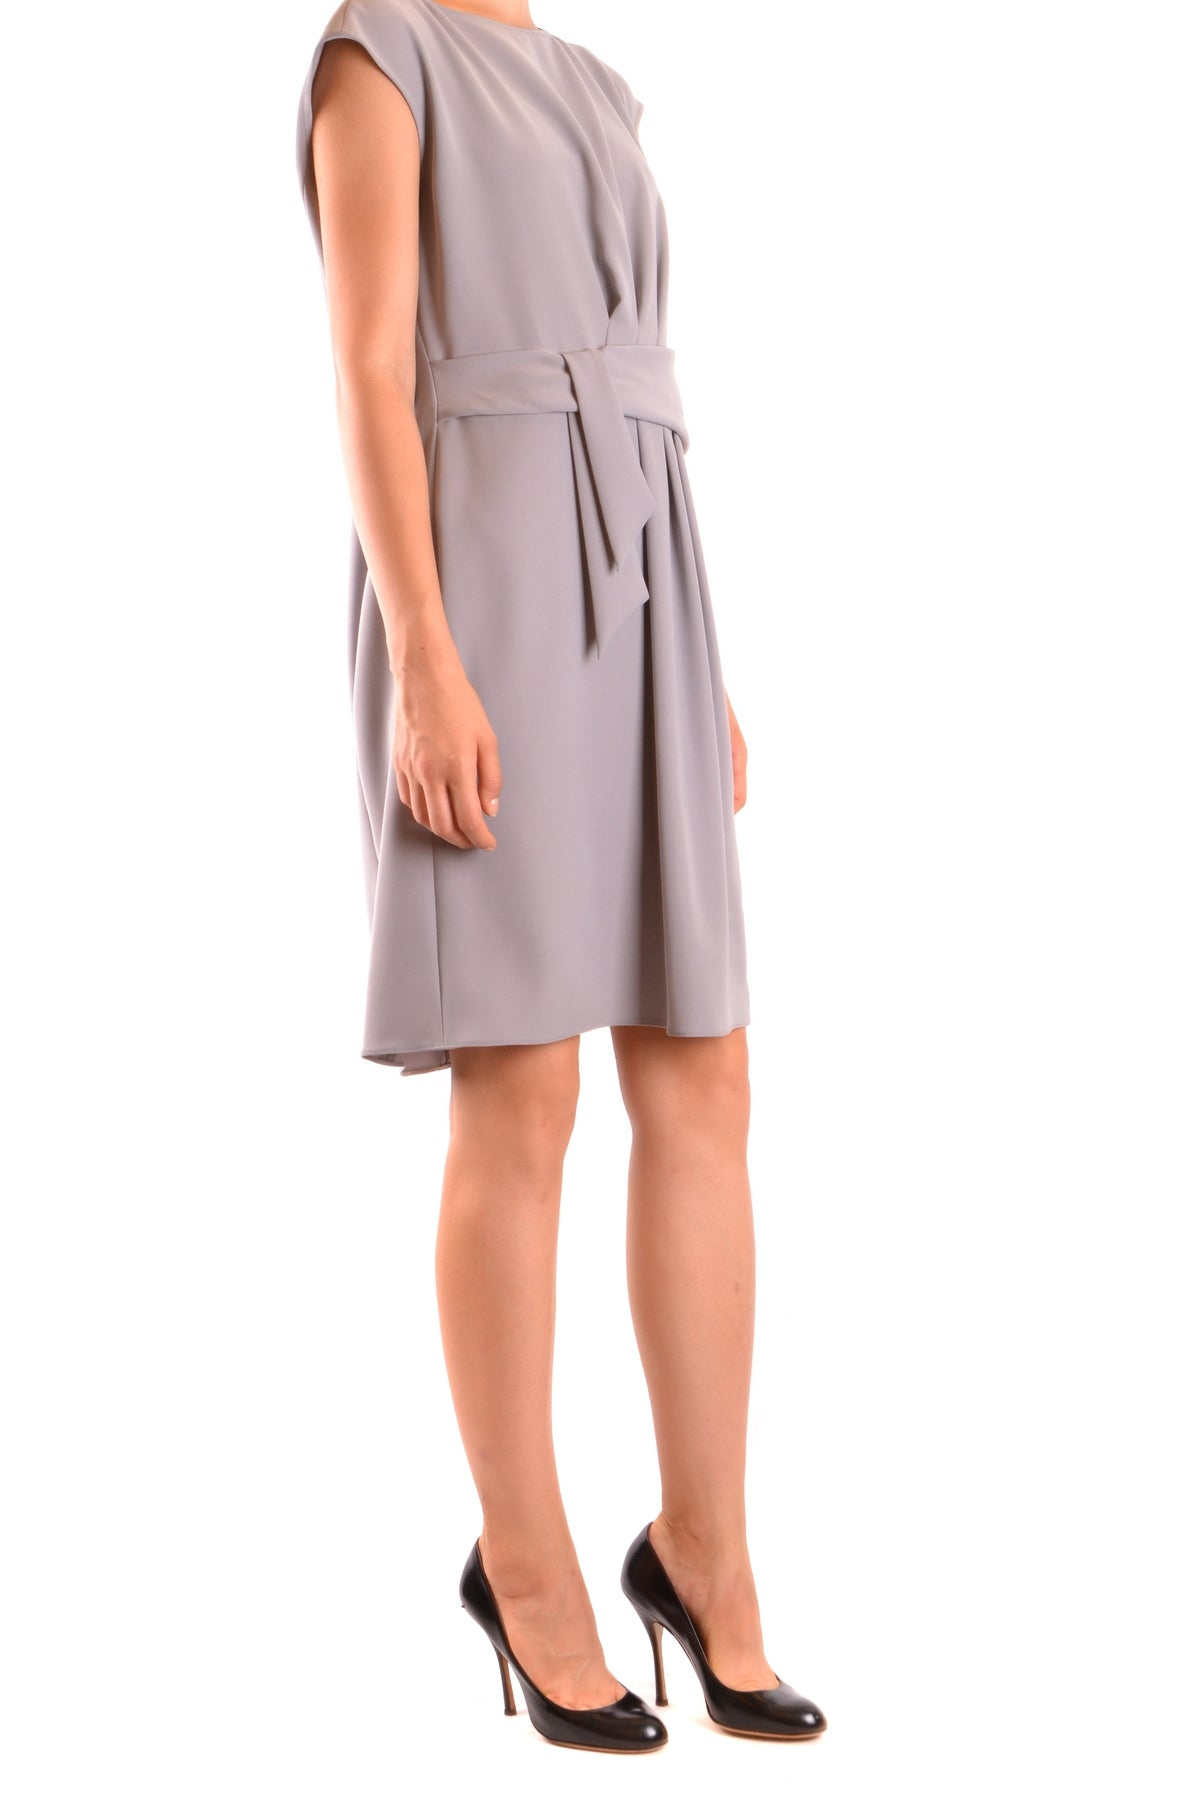 Dress Armani Collezioni-Dress - WOMAN-Product Details Season: Spring / SummerTerms: New With LabelMain Color: GrayGender: WomanMade In: ChinaManufacturer Part Number: Vma13T Vm015 628Size: ItYear: 2018Clothing Type: DressComposition: Polyester 100%-Keyomi-Sook